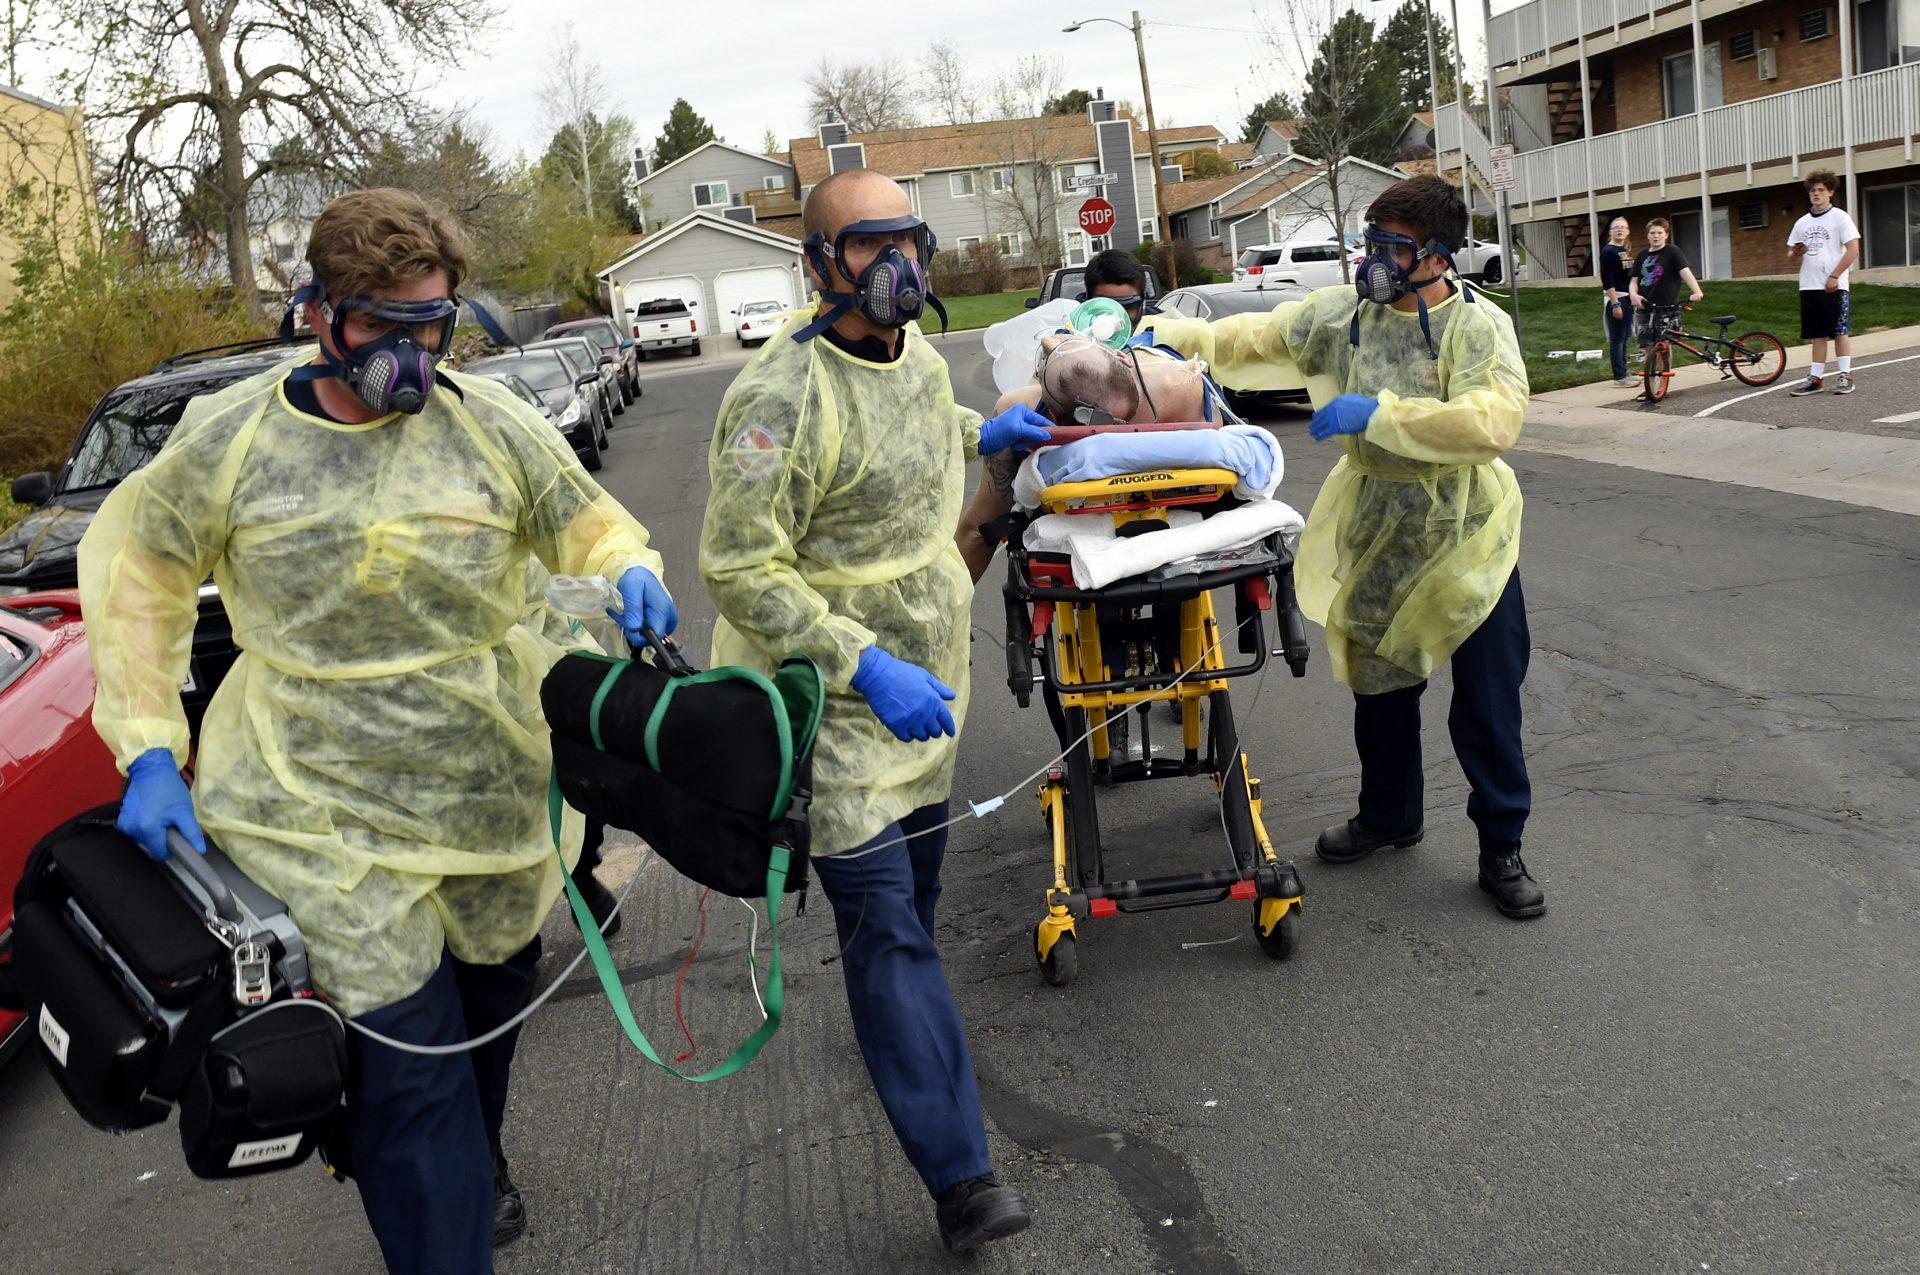 Firefighters in Littleton, Colo., move a patient on a gurney to an ambulance to take him to the hospital in May.